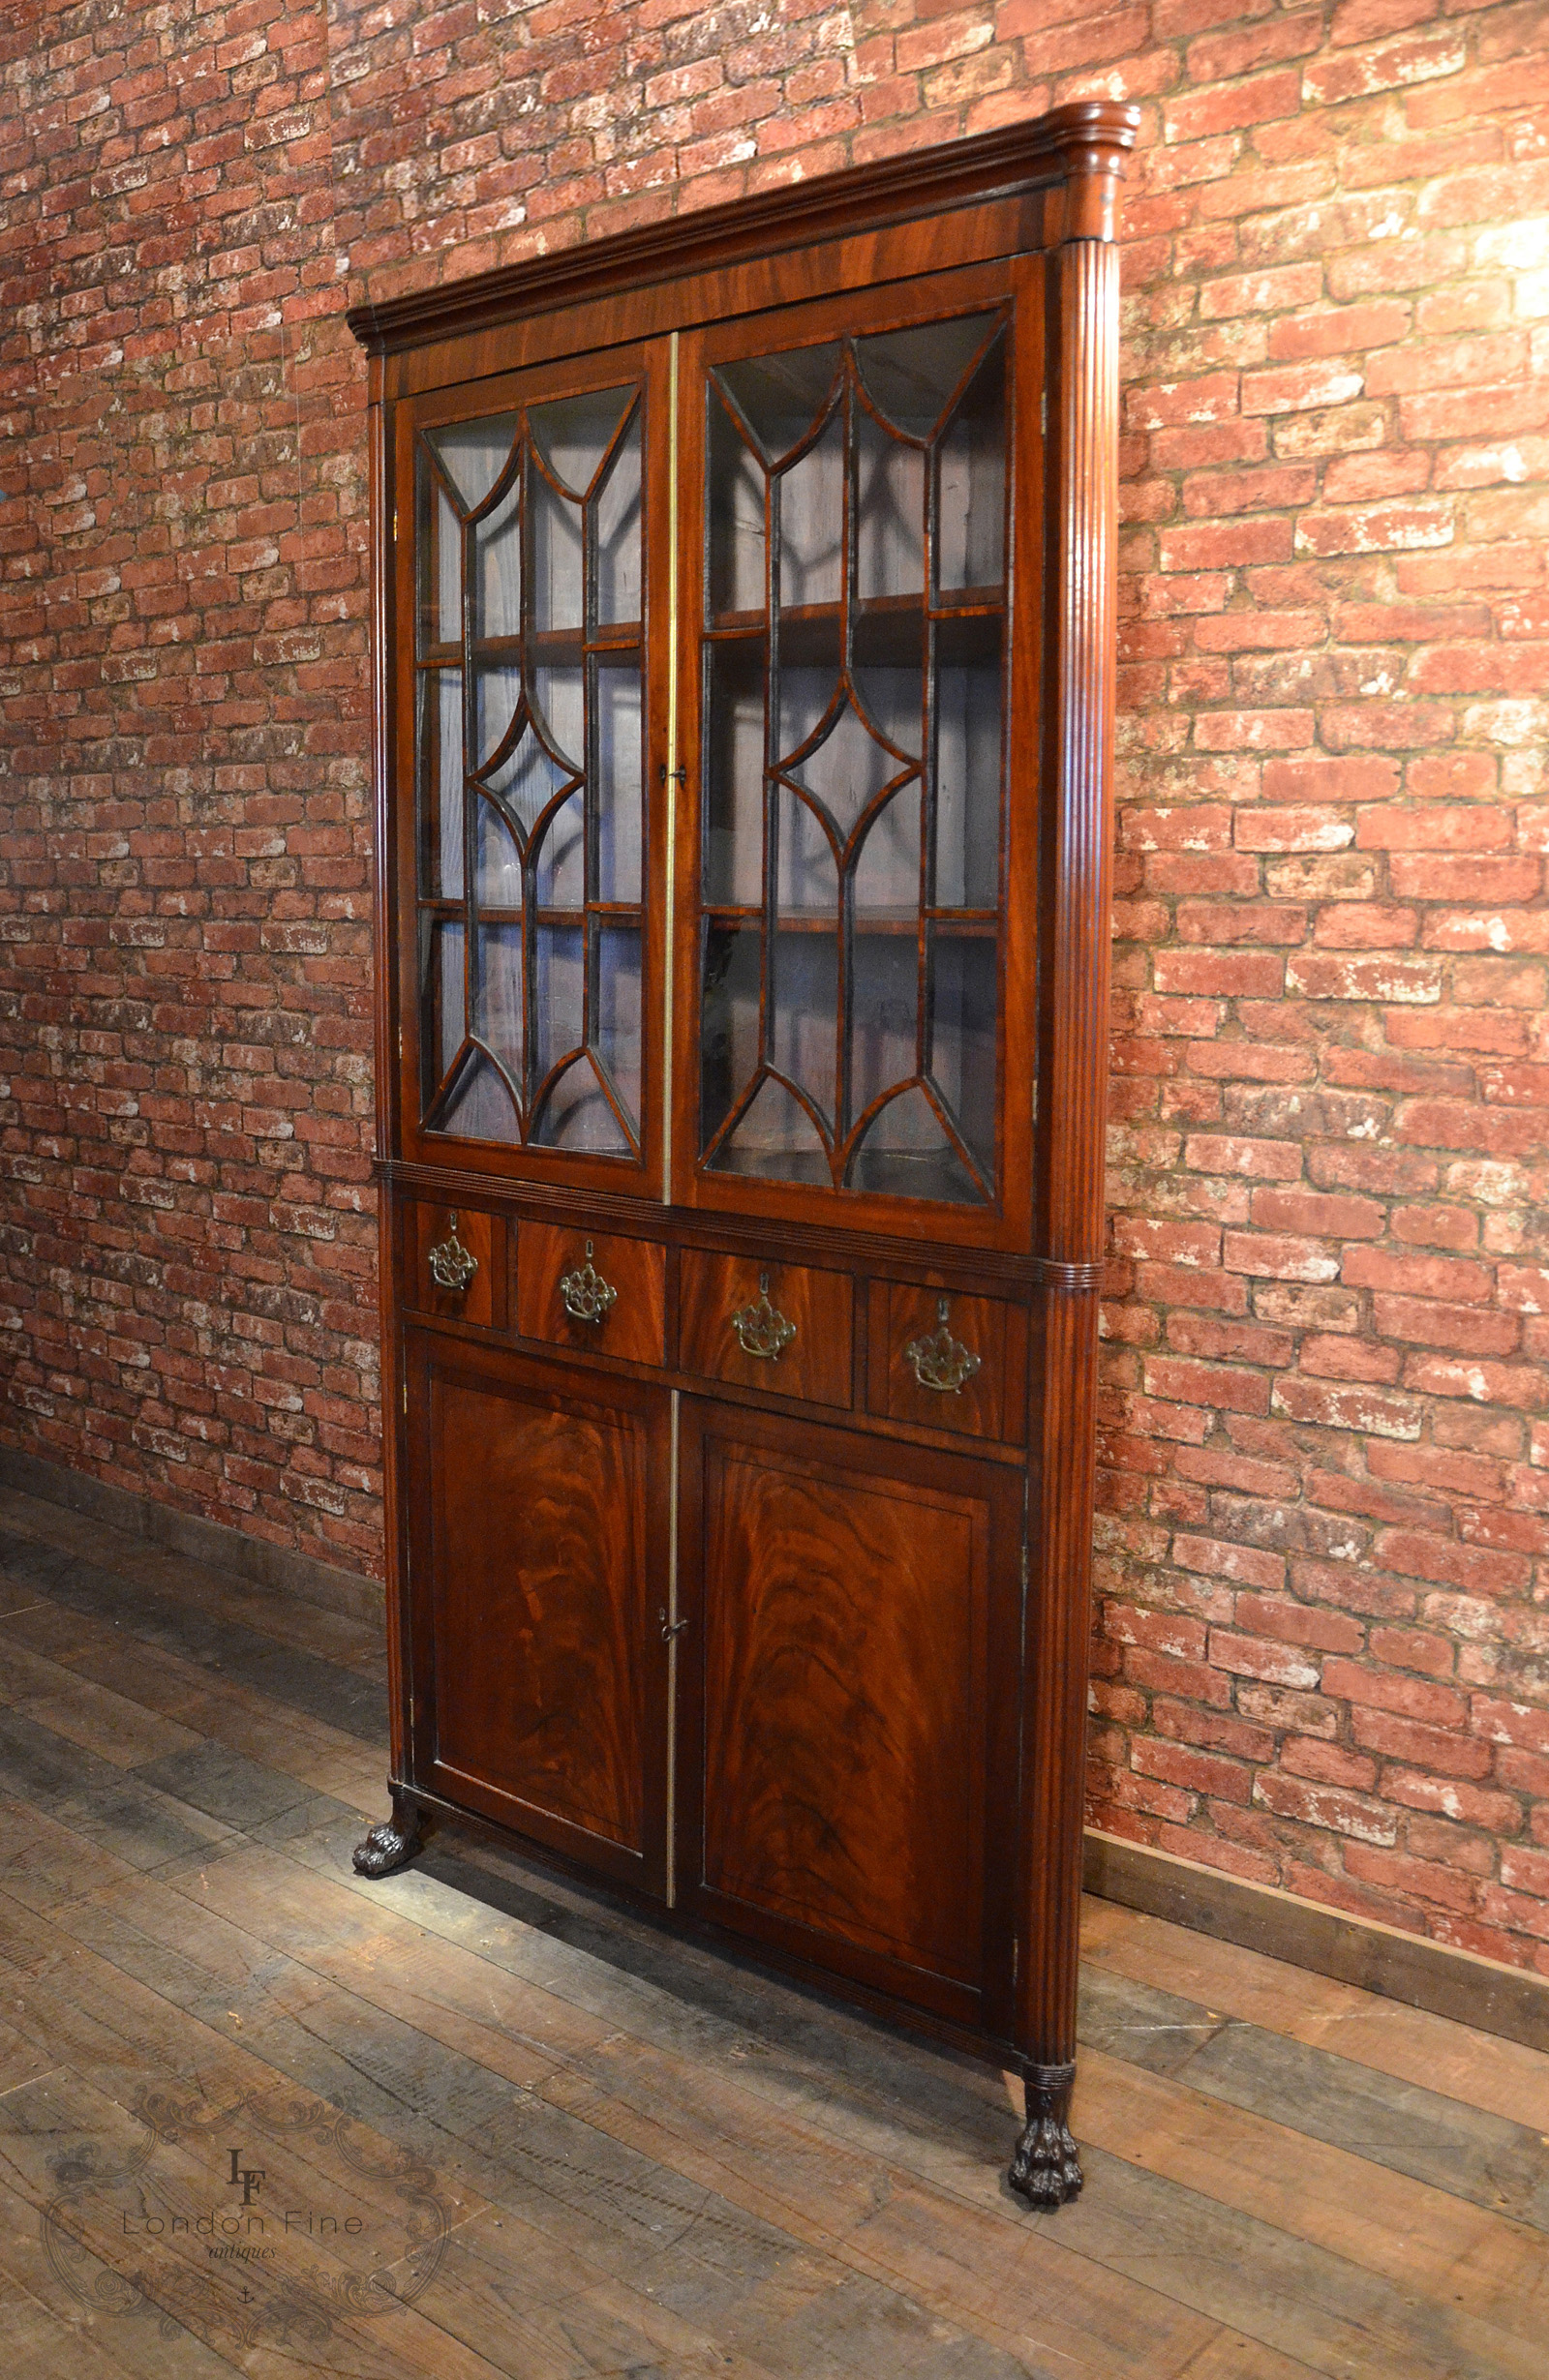 Antique Regency Tall Corner Cabinet, Astragal Glazed, Flame Mahogany C.1800    For Sale